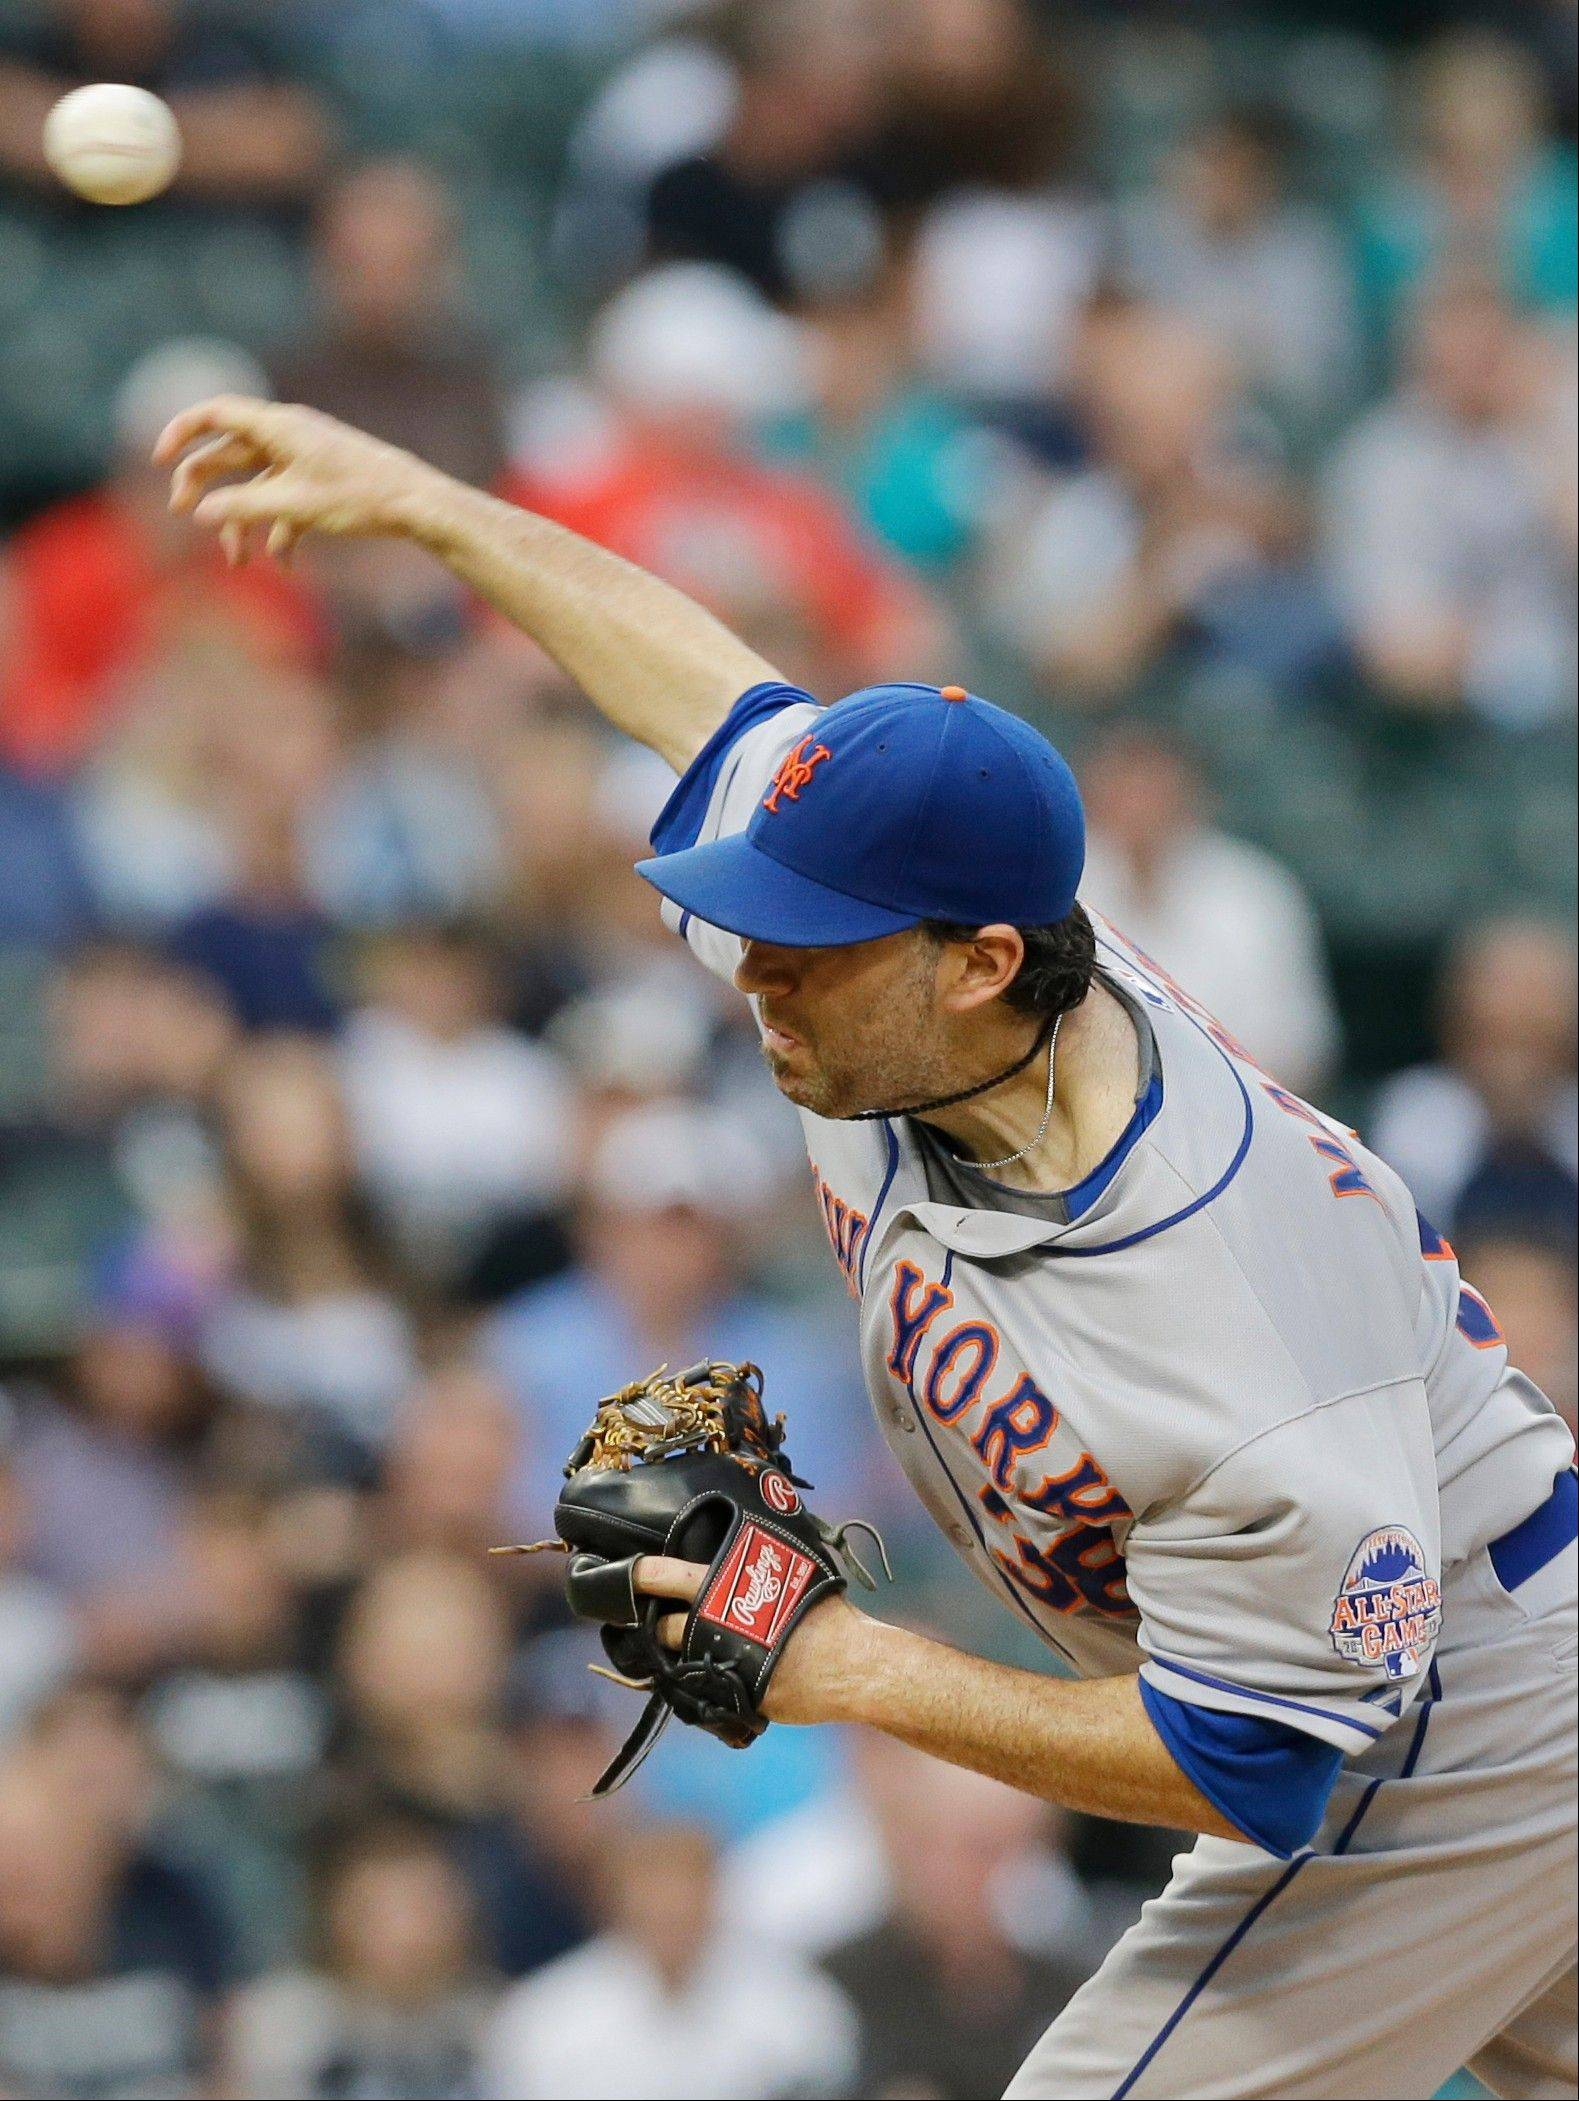 New York Mets starter Shaun Marcum throws against the Chicago White Sox during the third inning of an interleague baseball game Wednesday, June 26, 2013, in Chicago. (AP Photo/Nam Y. Huh)